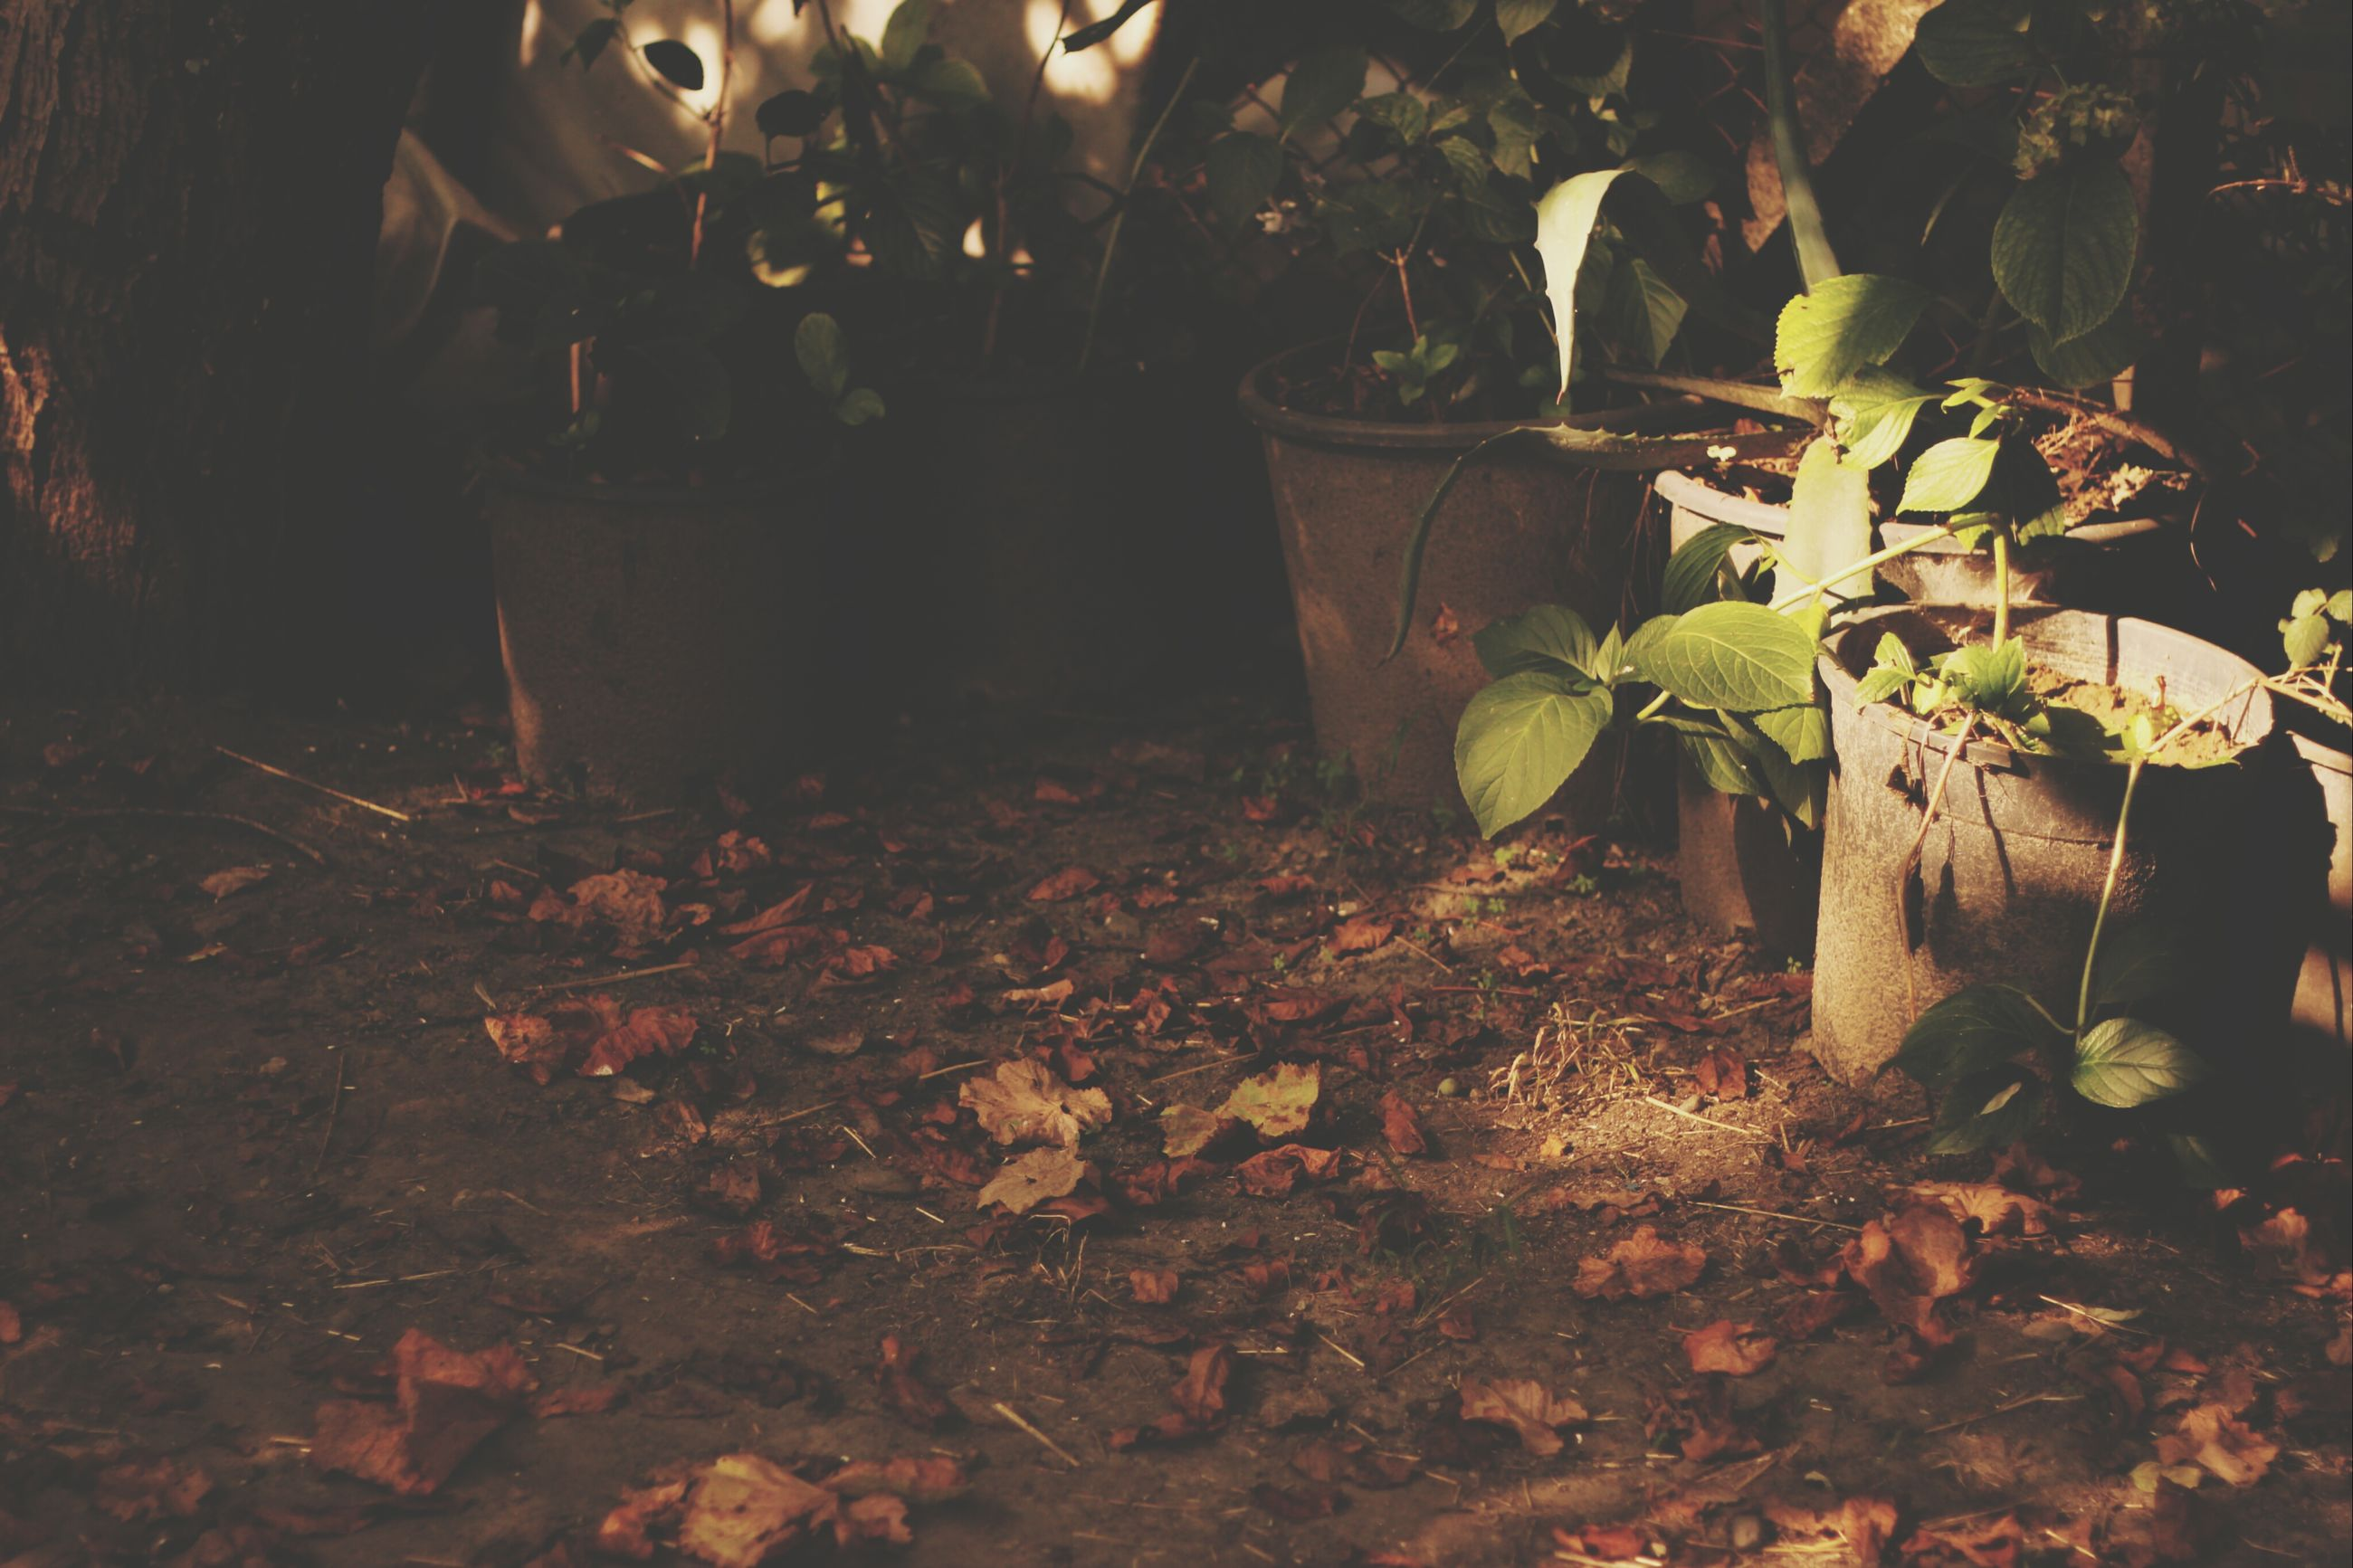 leaf, plant, growth, night, nature, potted plant, illuminated, front or back yard, no people, tree, built structure, flower, outdoors, sunlight, house, wall - building feature, leaves, autumn